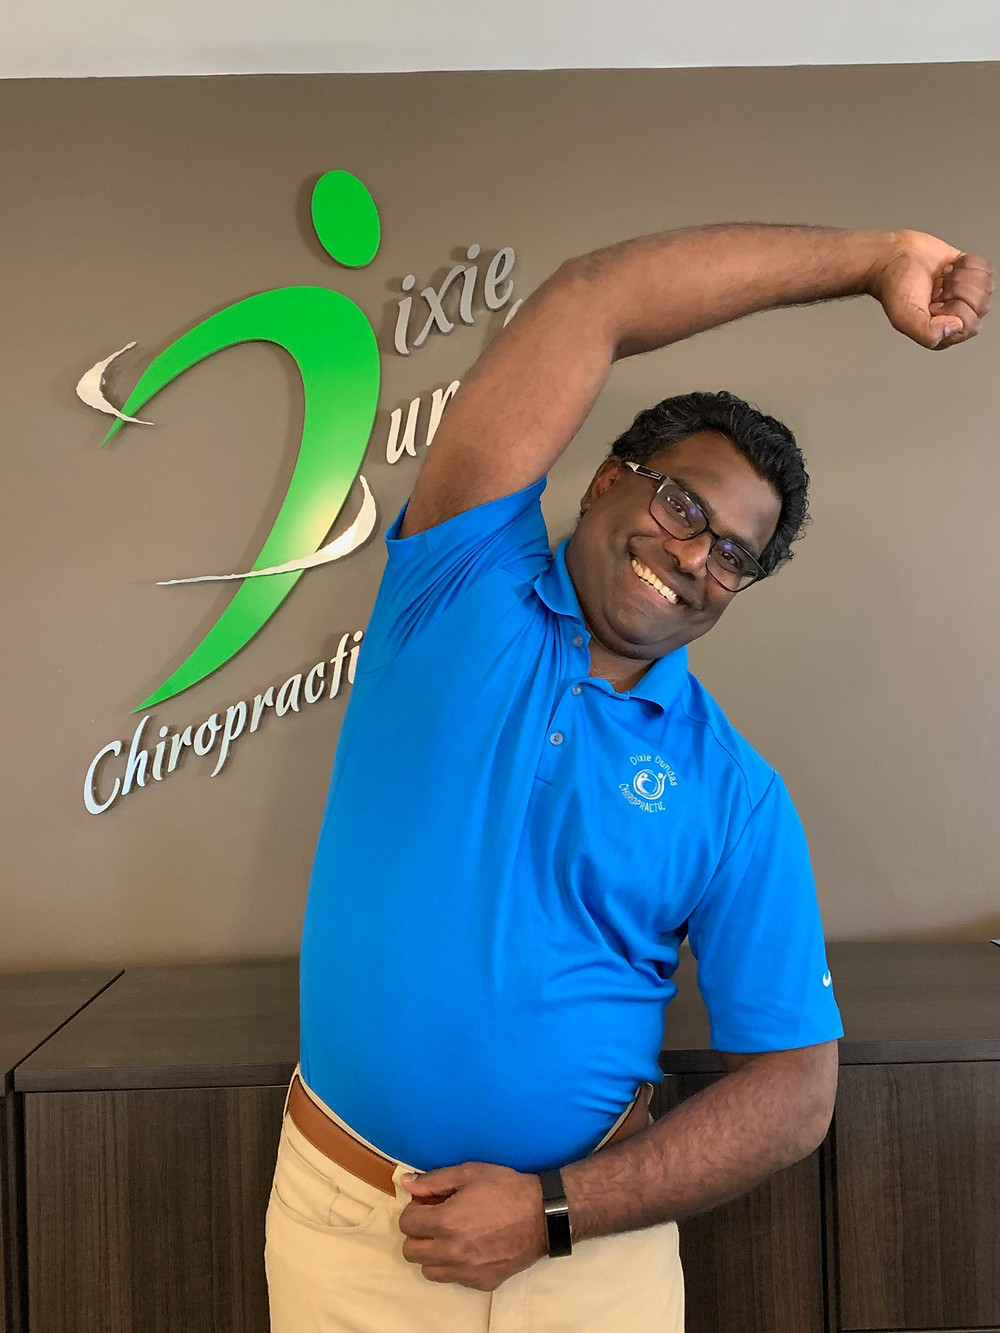 Dr. Andre demonstrating lateral side stretch for golf